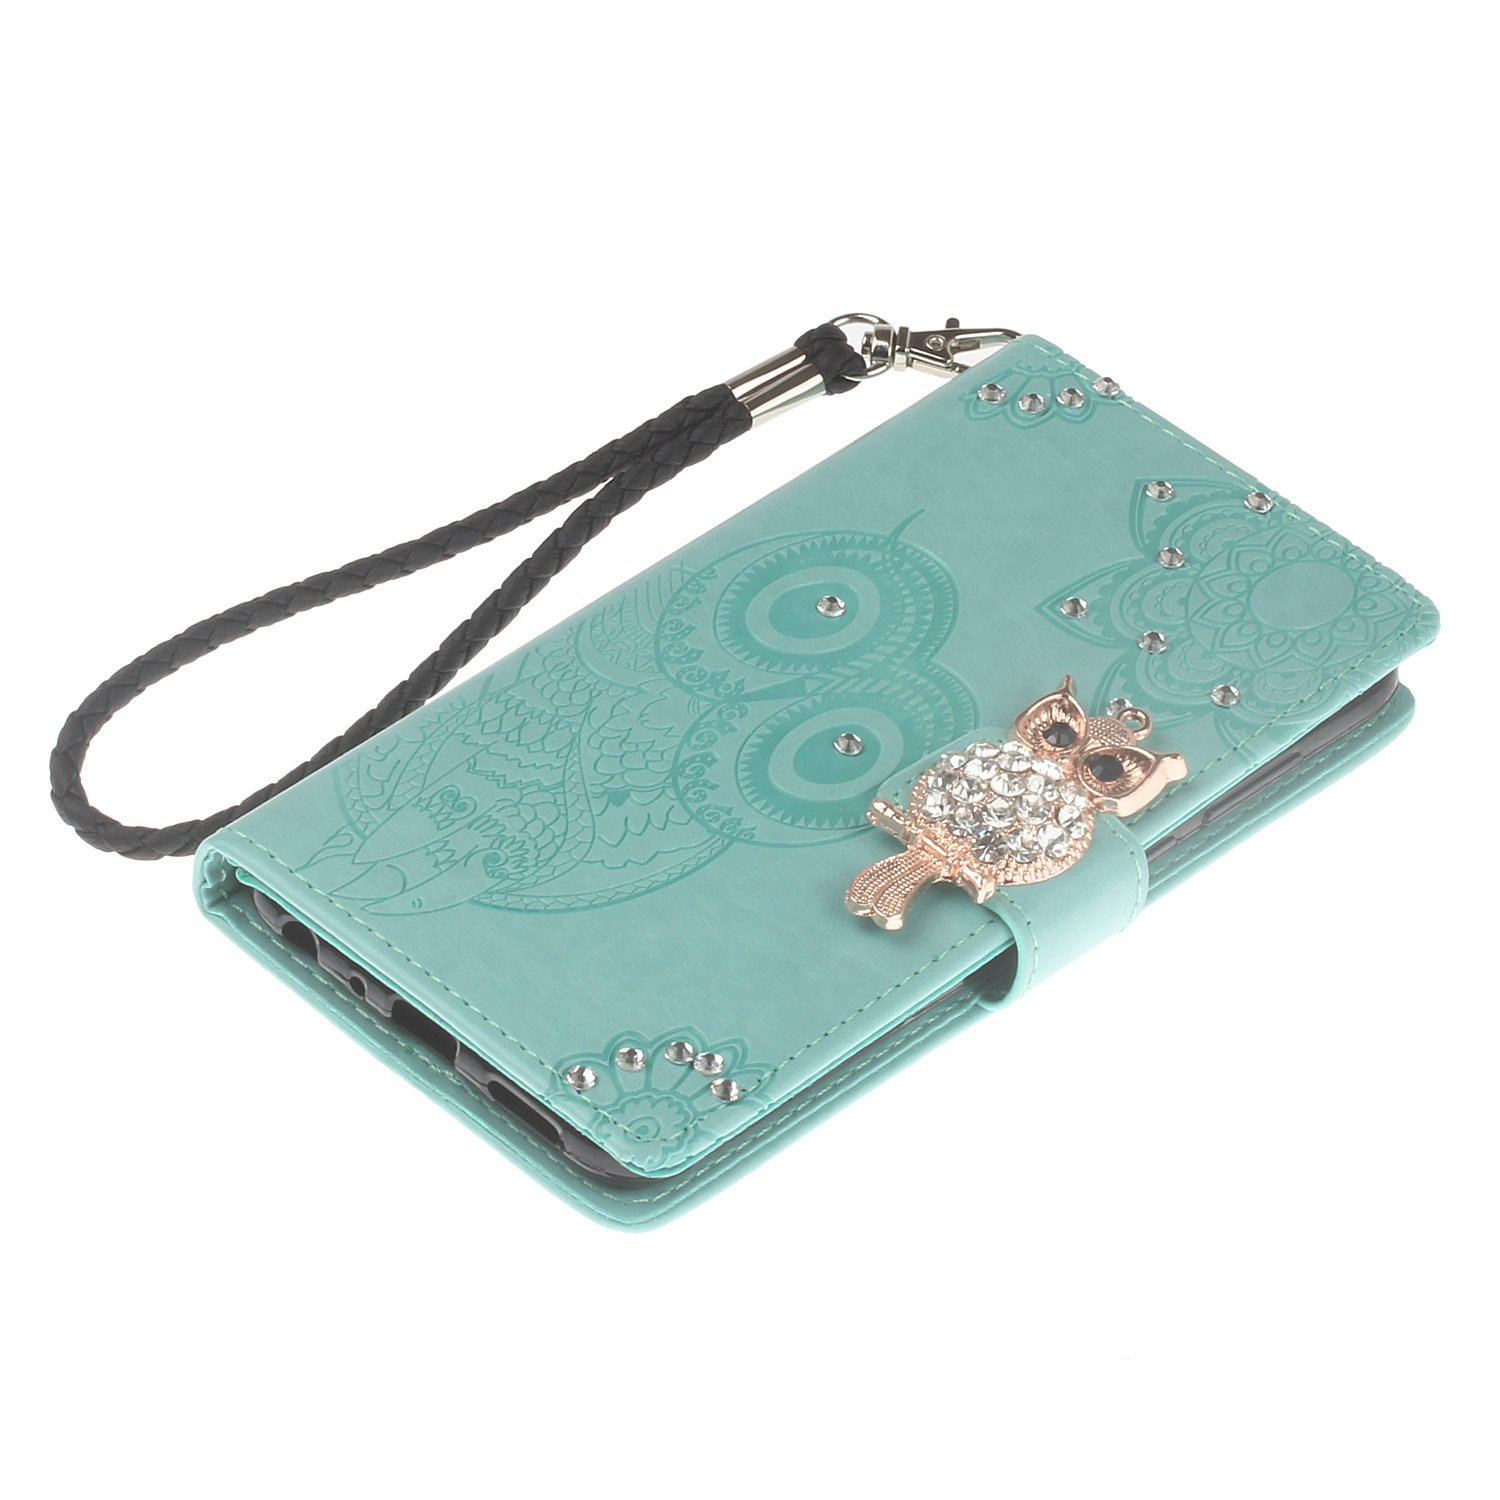 MoreChioce Huawei Honor 9 Lite Leather Case Embossed Pattern Rhinestone Owl Design Soft PU Leather Flip Wallet Card Slots with Kickstand Function Case Compatible with Huawei Honor 9 Lite Rose Gold